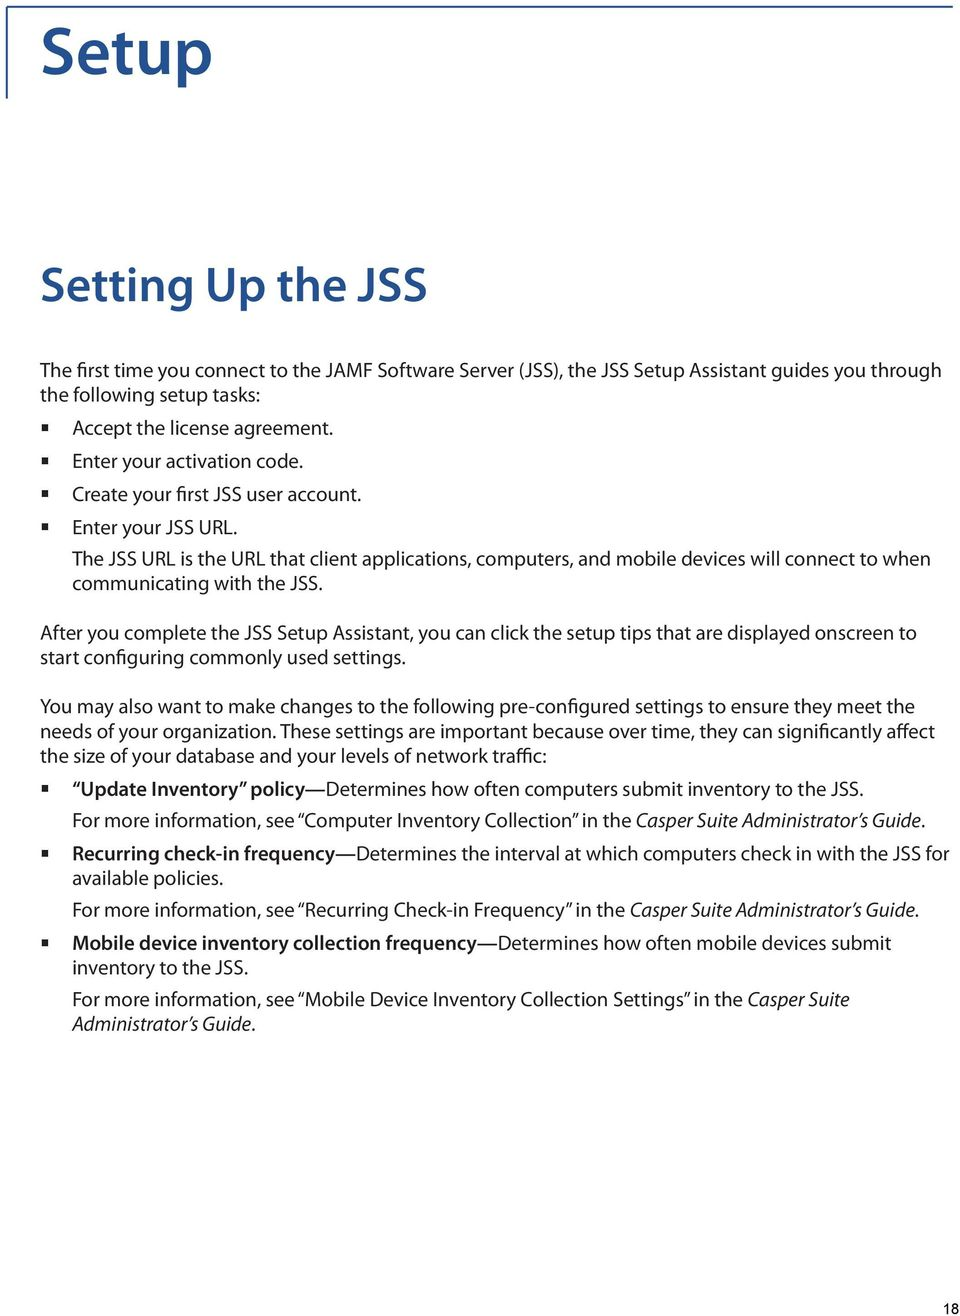 The JSS URL is the URL that client applications, computers, and mobile devices will connect to when communicating with the JSS.